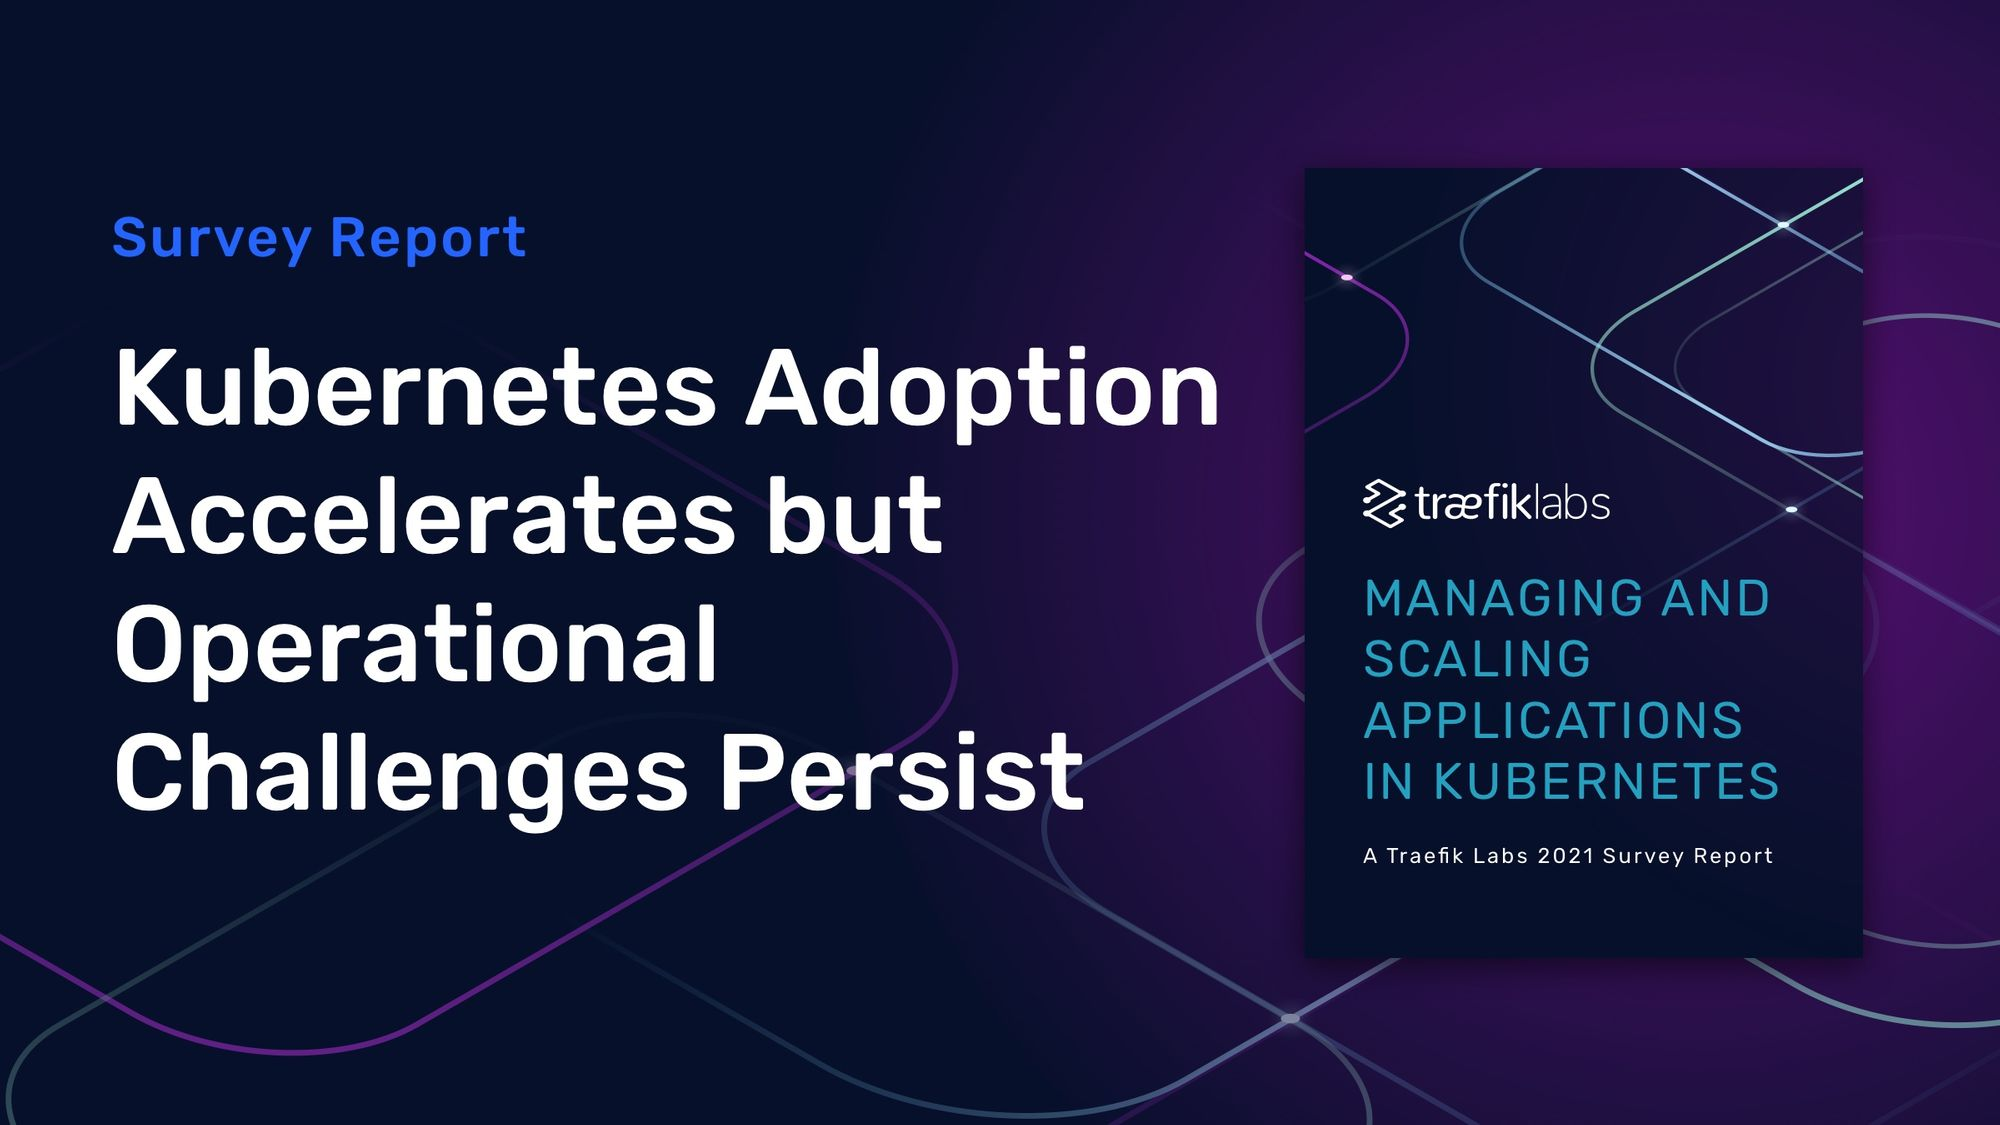 Kubernetes Adoption Accelerates but Operational Challenges Persist